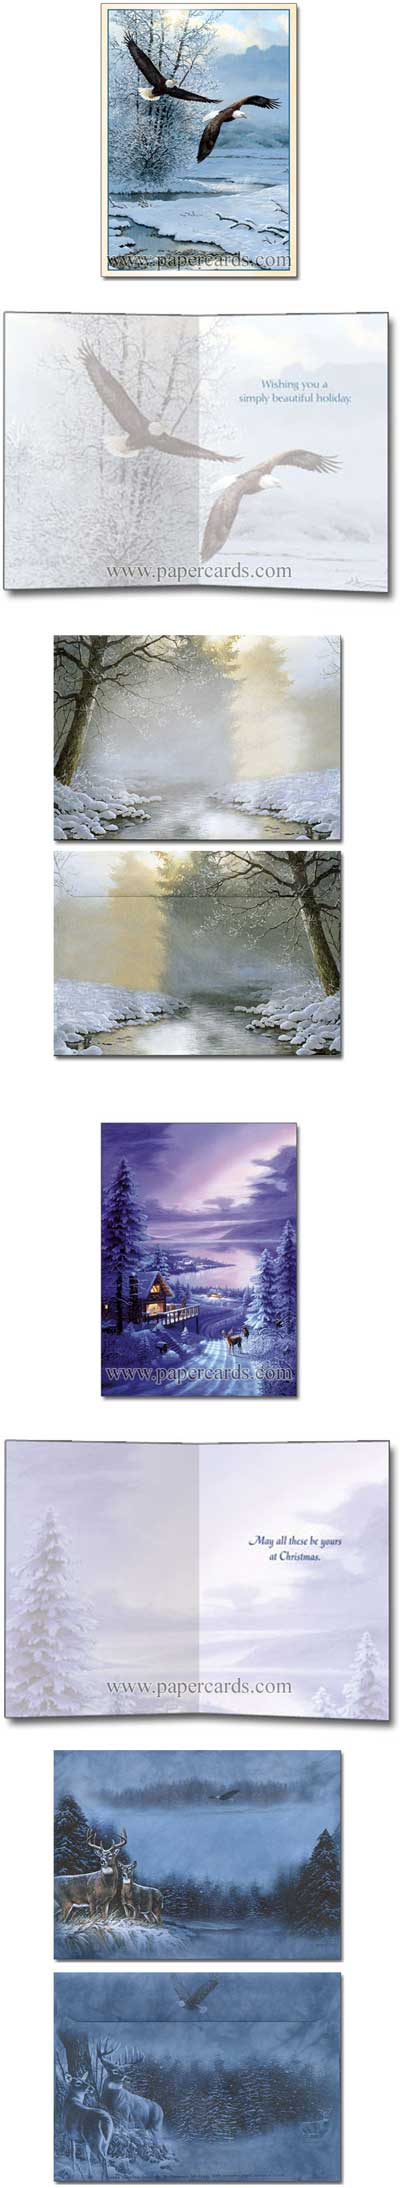 Winter Wonders (24 cards/24 envelopes) Tree-Free Greetings Boxed Christmas Cards